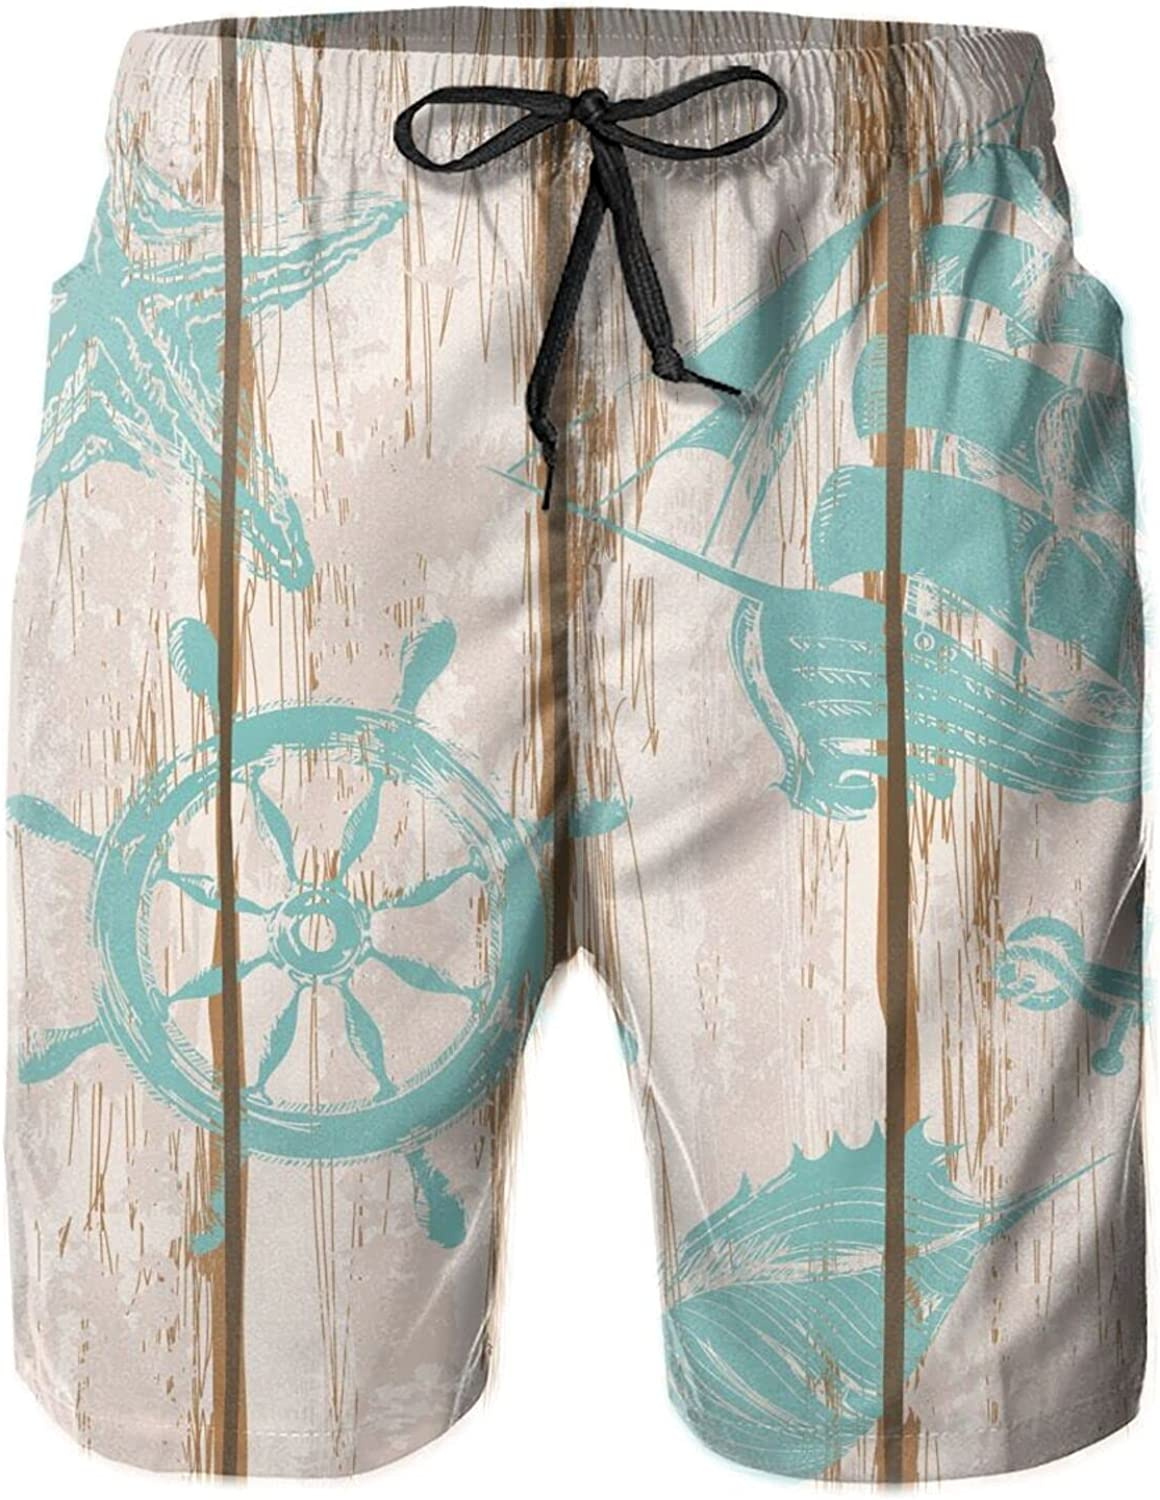 Old Wooden Board Anchor Seashell Starfish Sailboat Men's Elastic Beach Shorts Lightweight Breathable Casual Mesh Lining Swimsuit Shorts with Pockets M-XXL